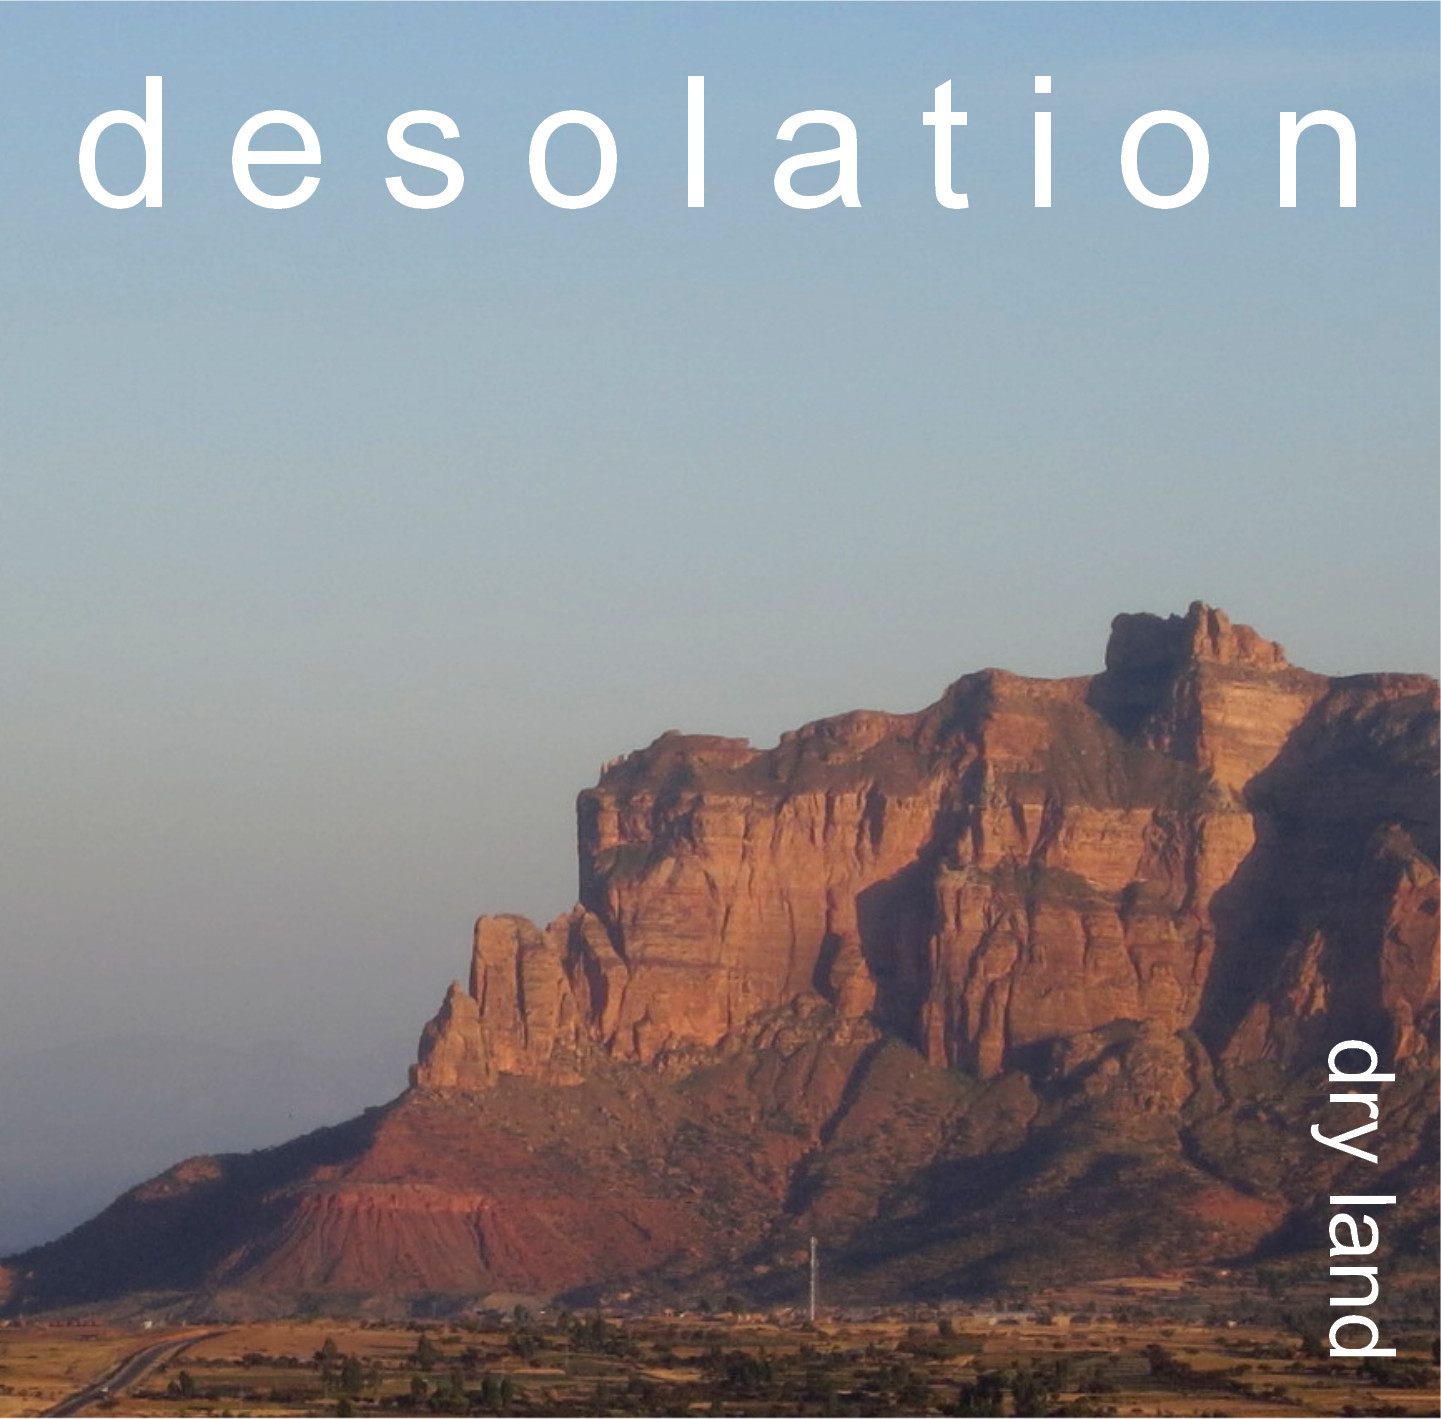 dry land - desolation